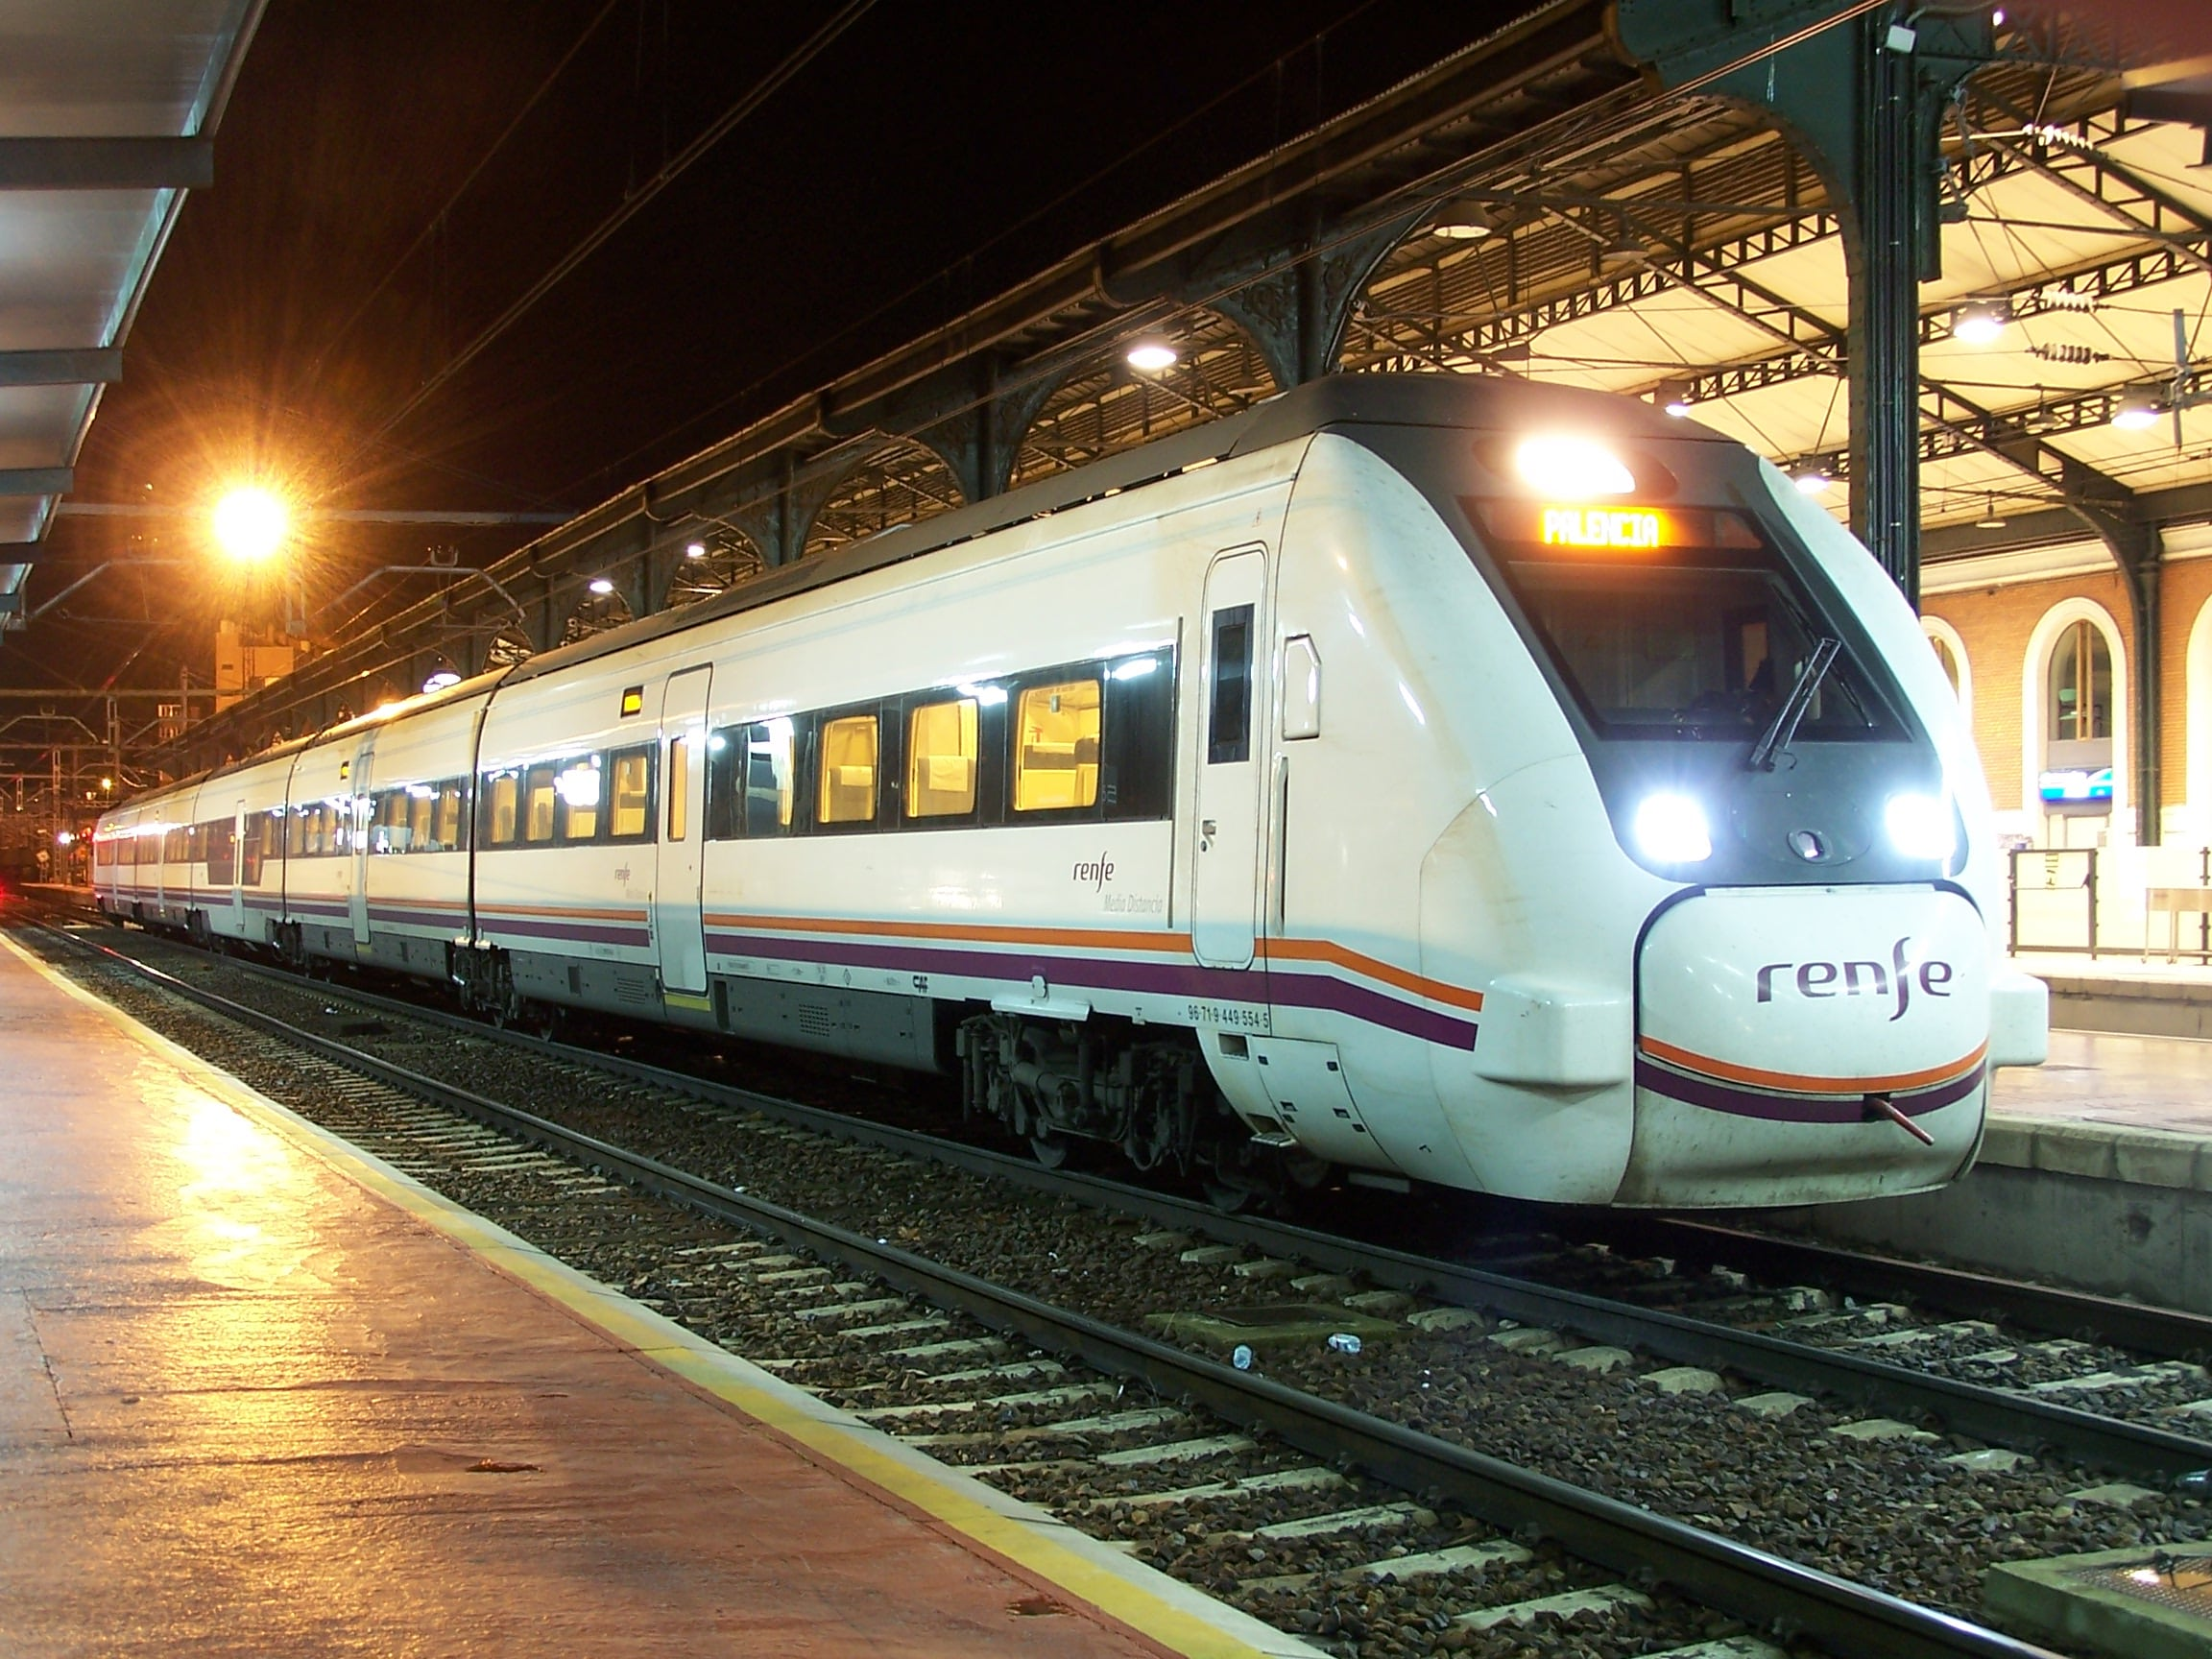 A good option for Spain transportation is the national train network, Renfe